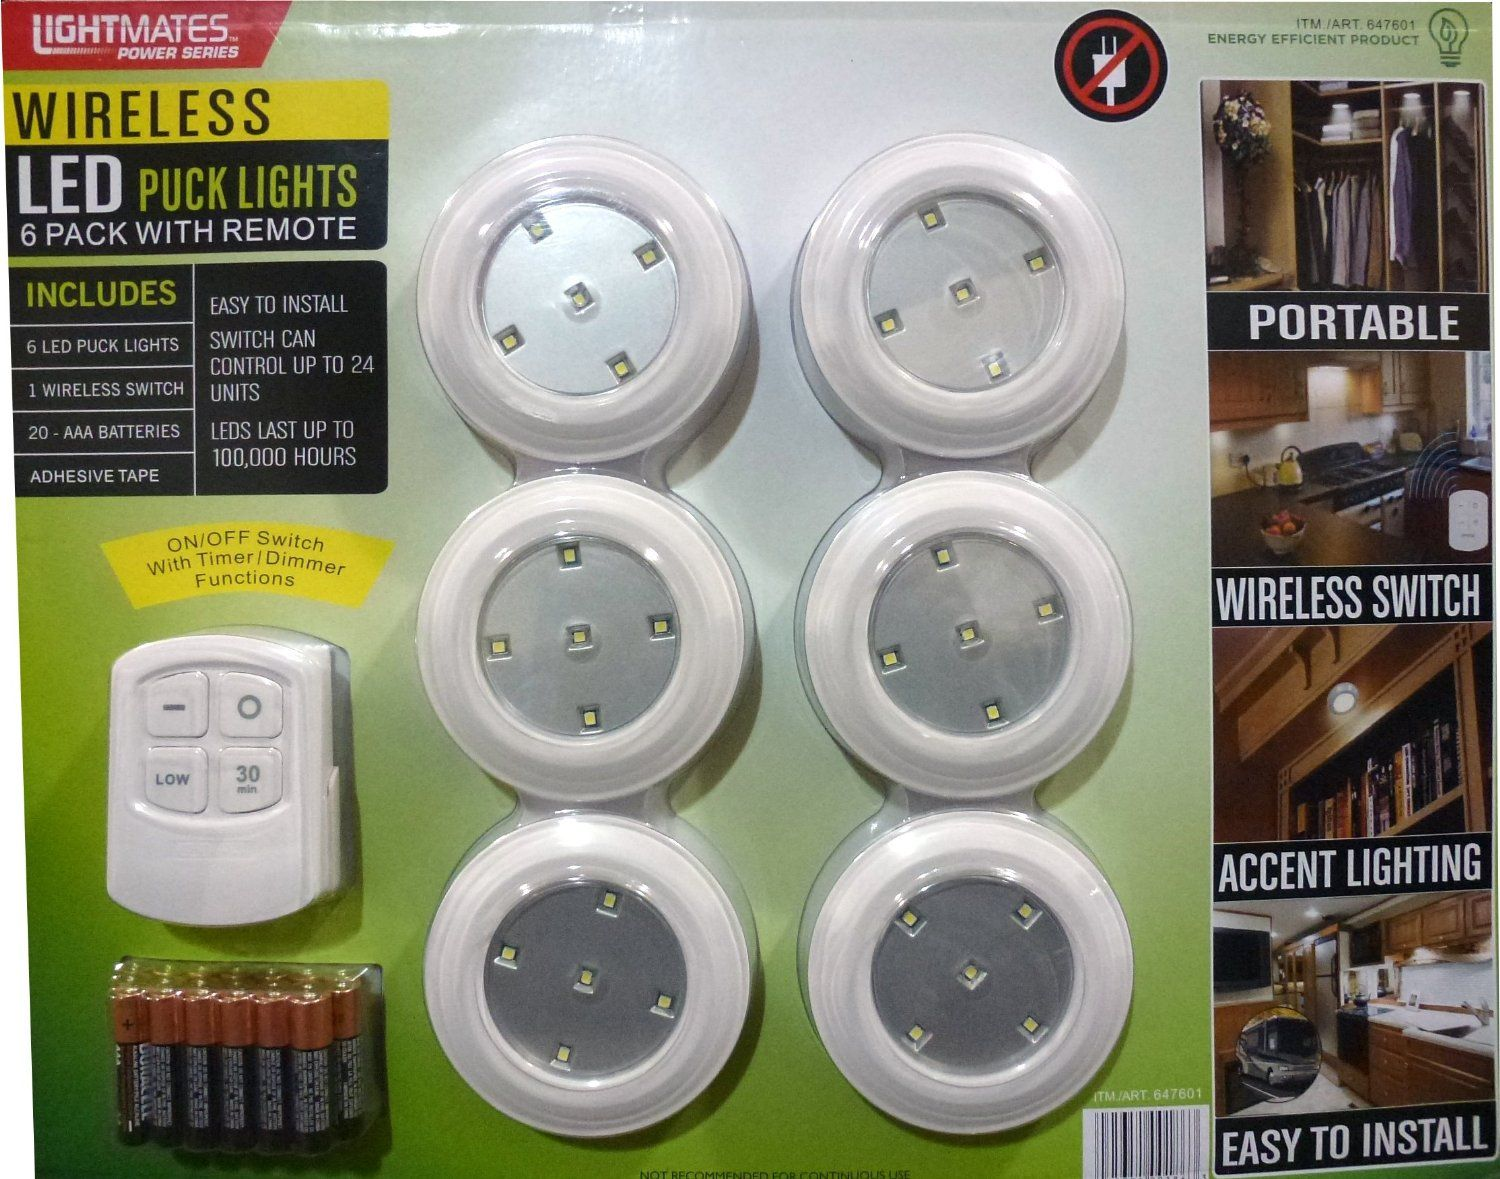 Lightmates LED Wireless Puck Lights with Remote & Batteries - 6 ...